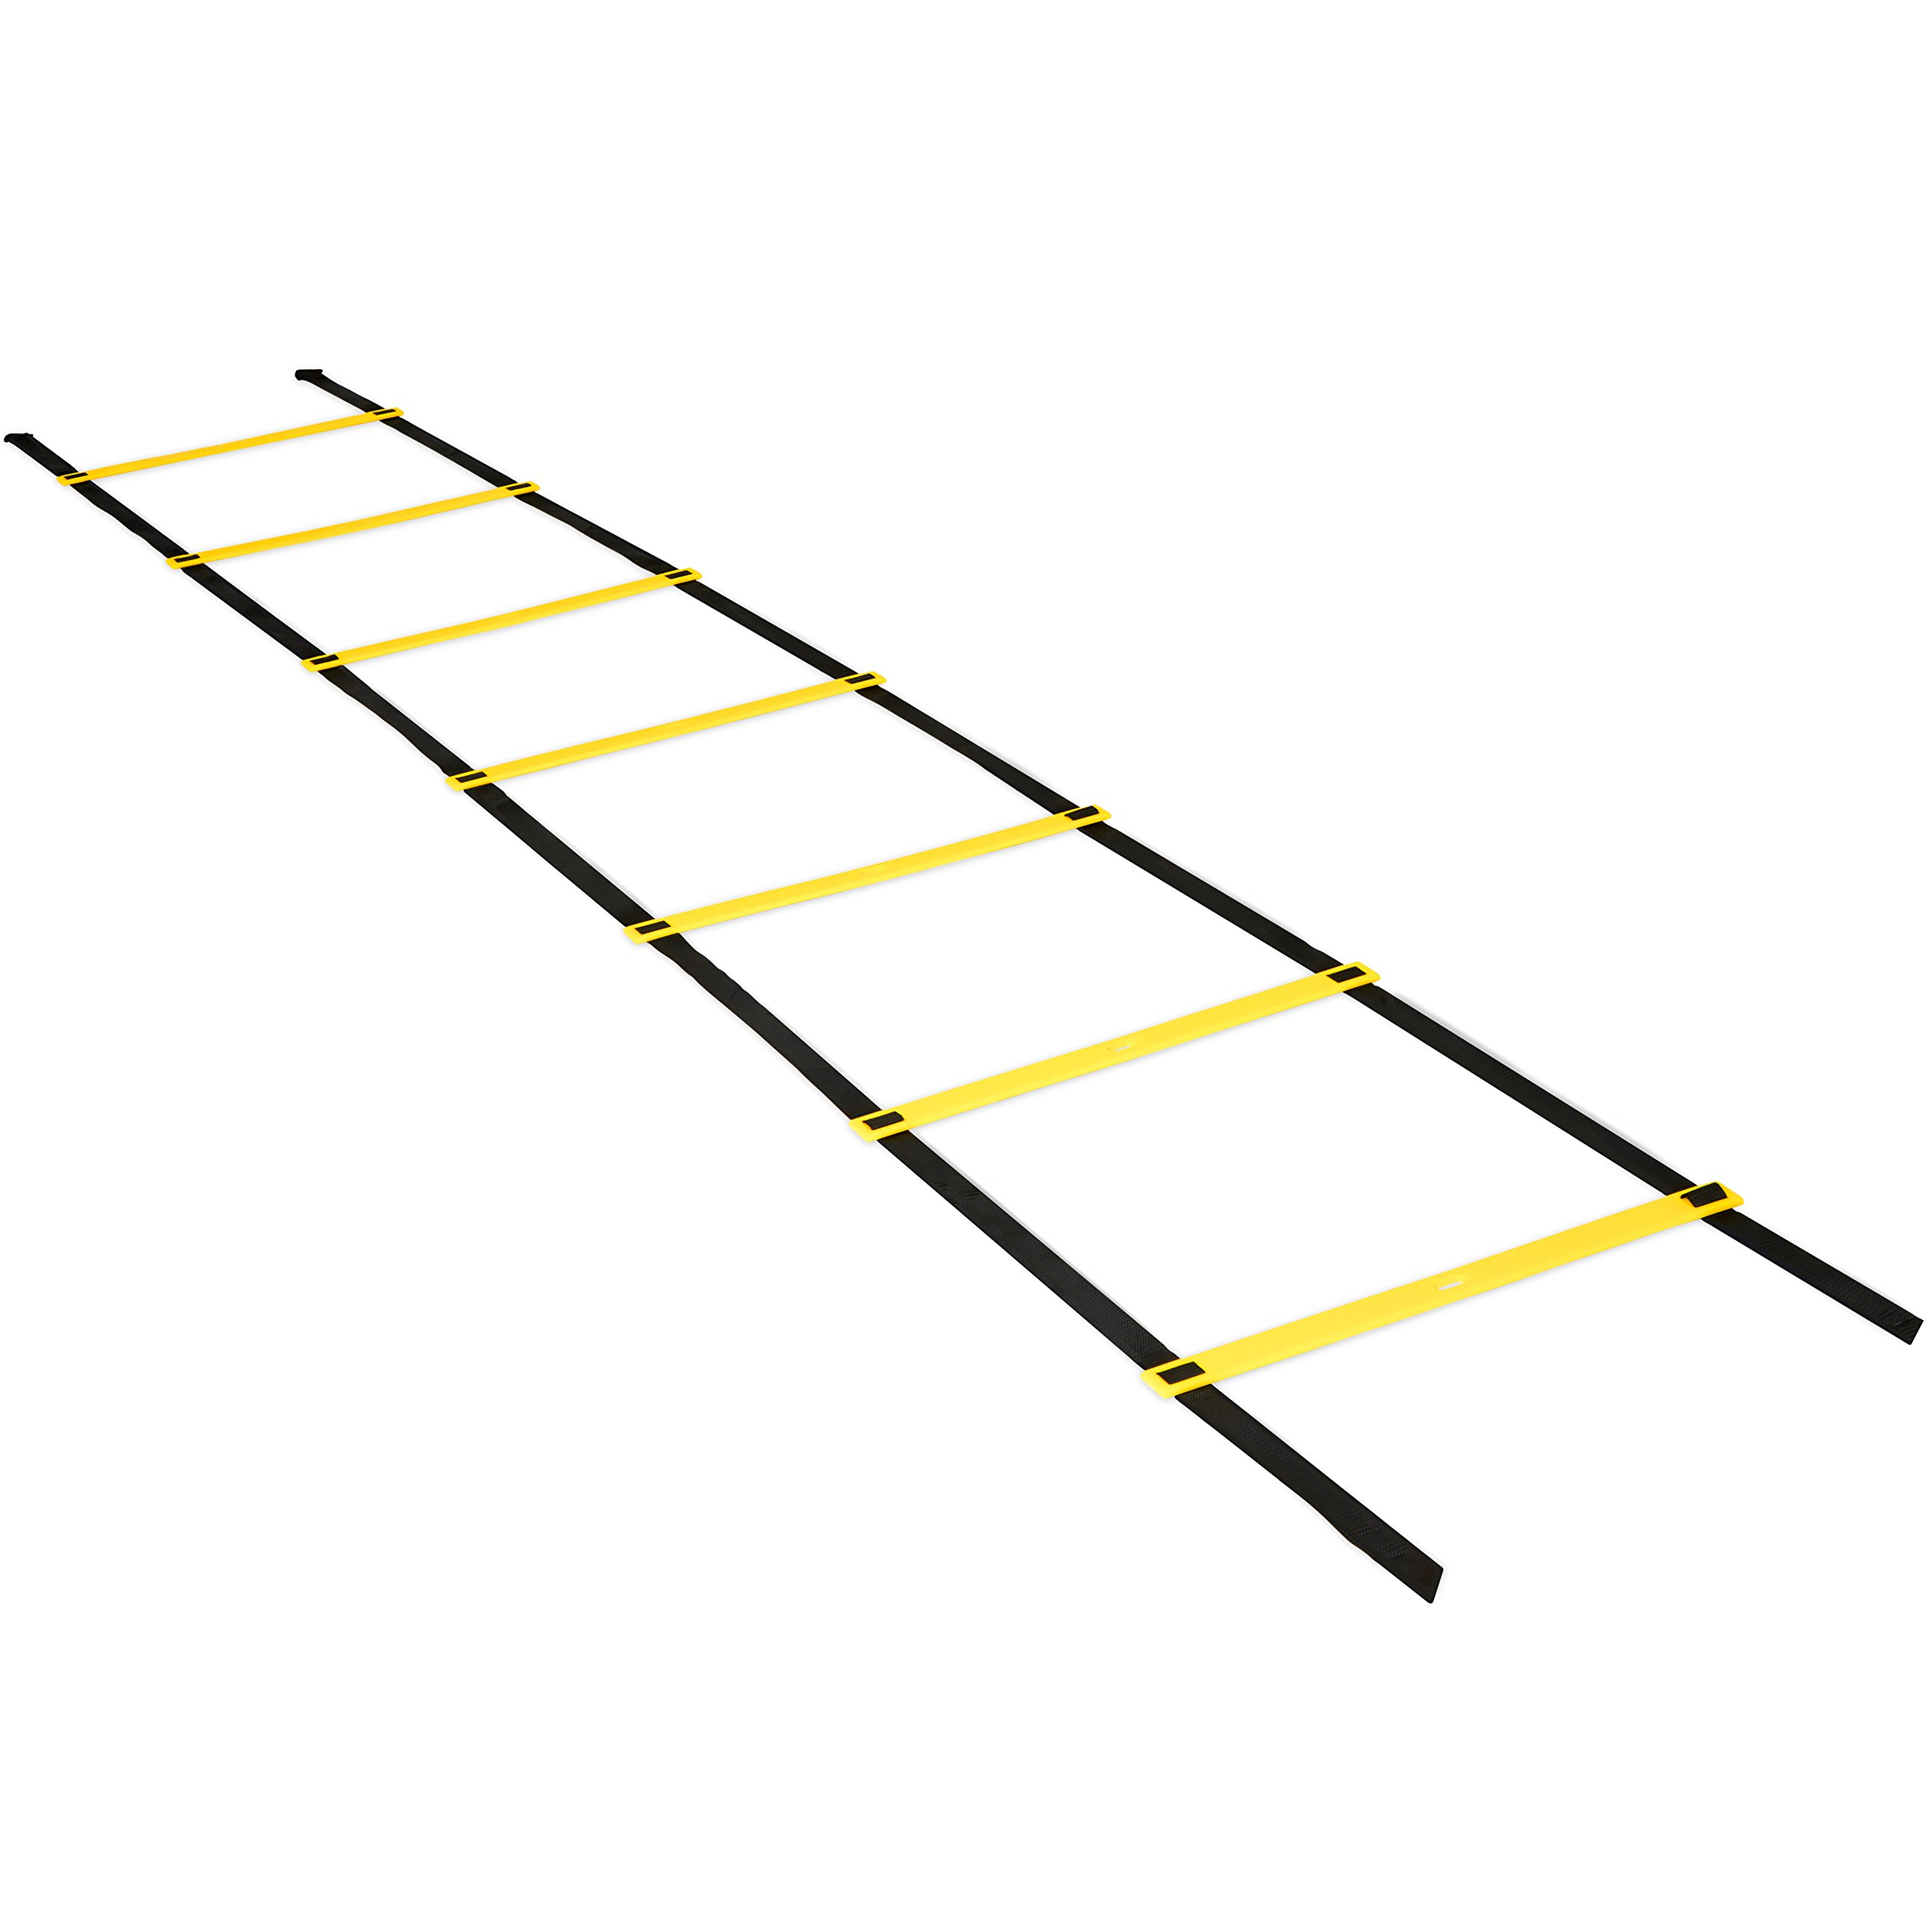 Perfect Soccer Skills Premium Soccer Training Agility Ladder + Free Carrying Bag by Perfect Soccer (Image #2)